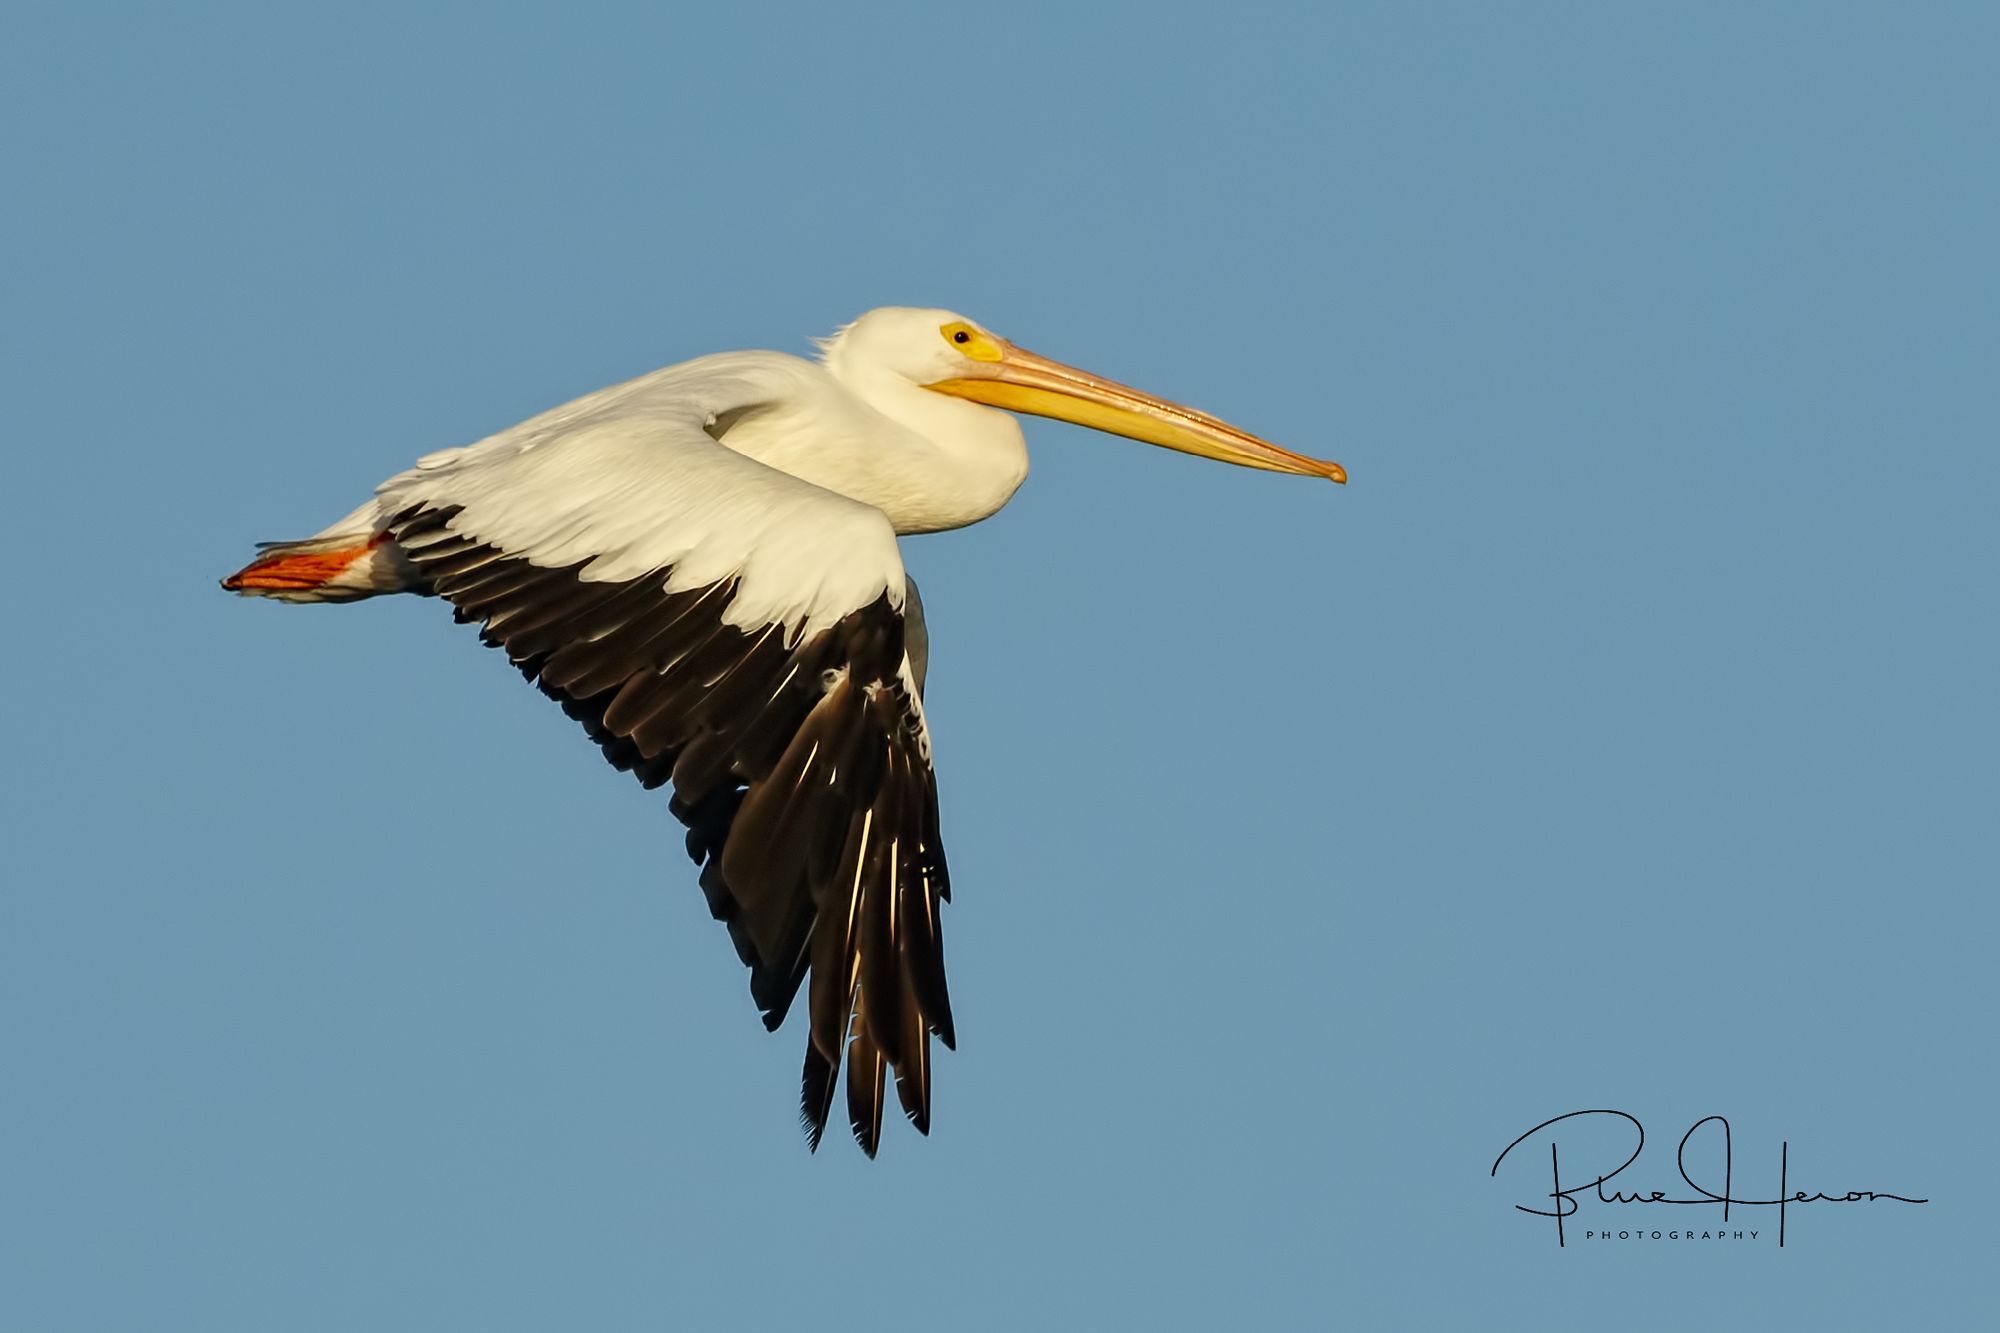 I had hoped to capture the White Pelicans swimming in the tide but anther photographer spooked them into flight.